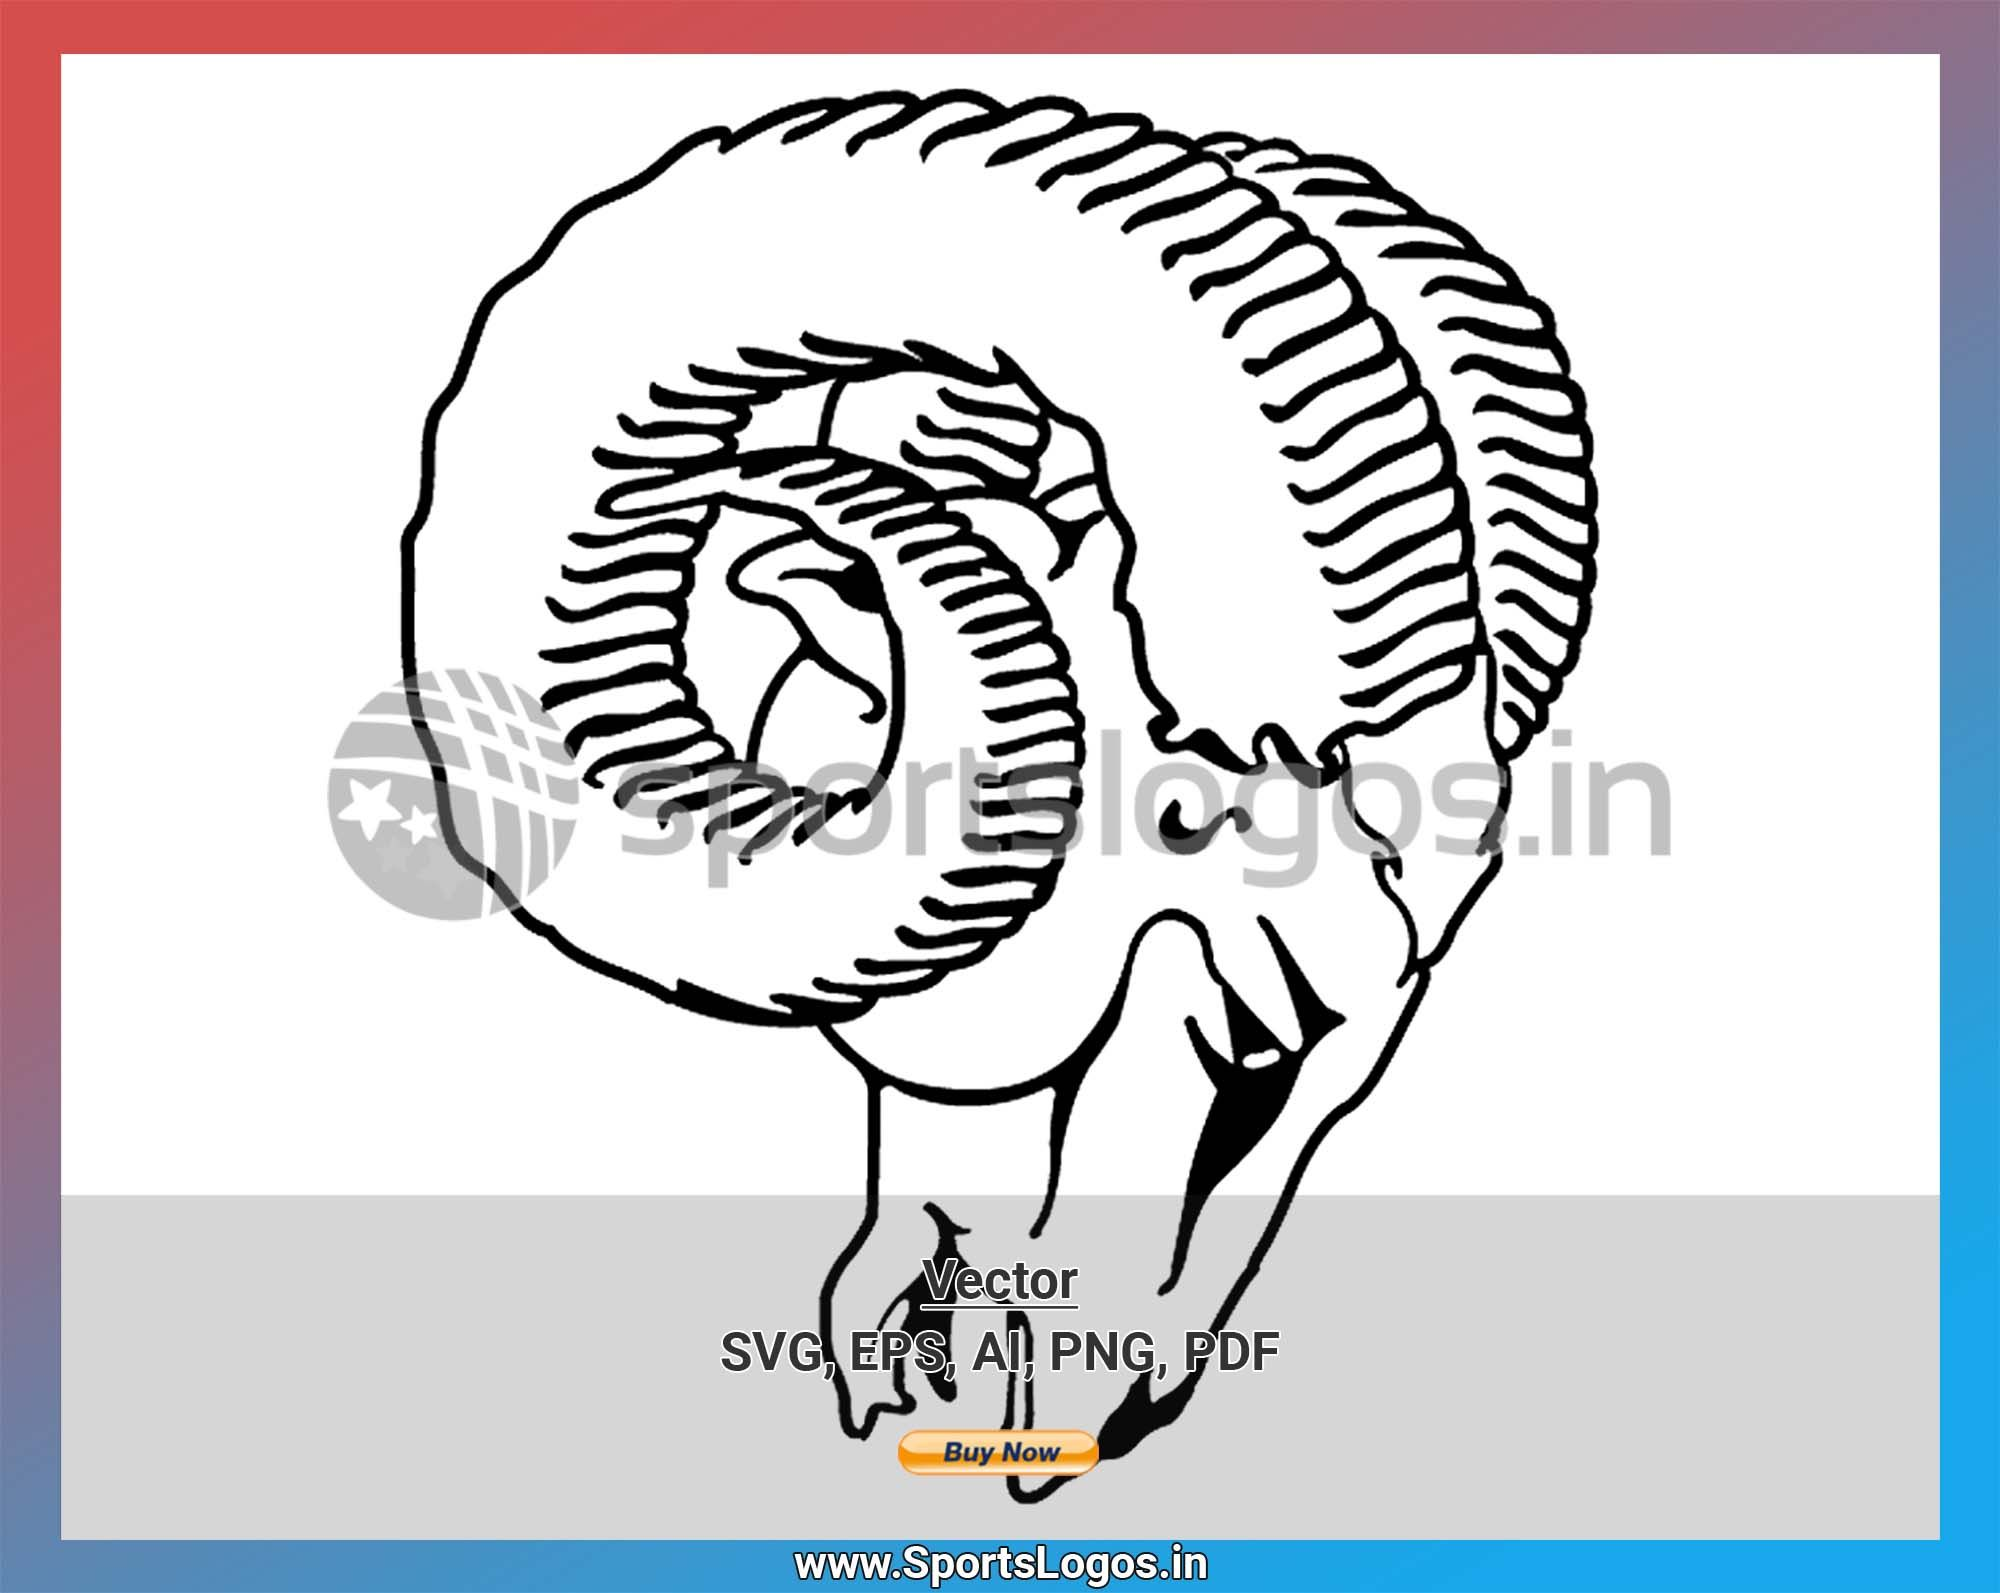 Los Angeles Rams Football Sports Vector SVG Logo in 5